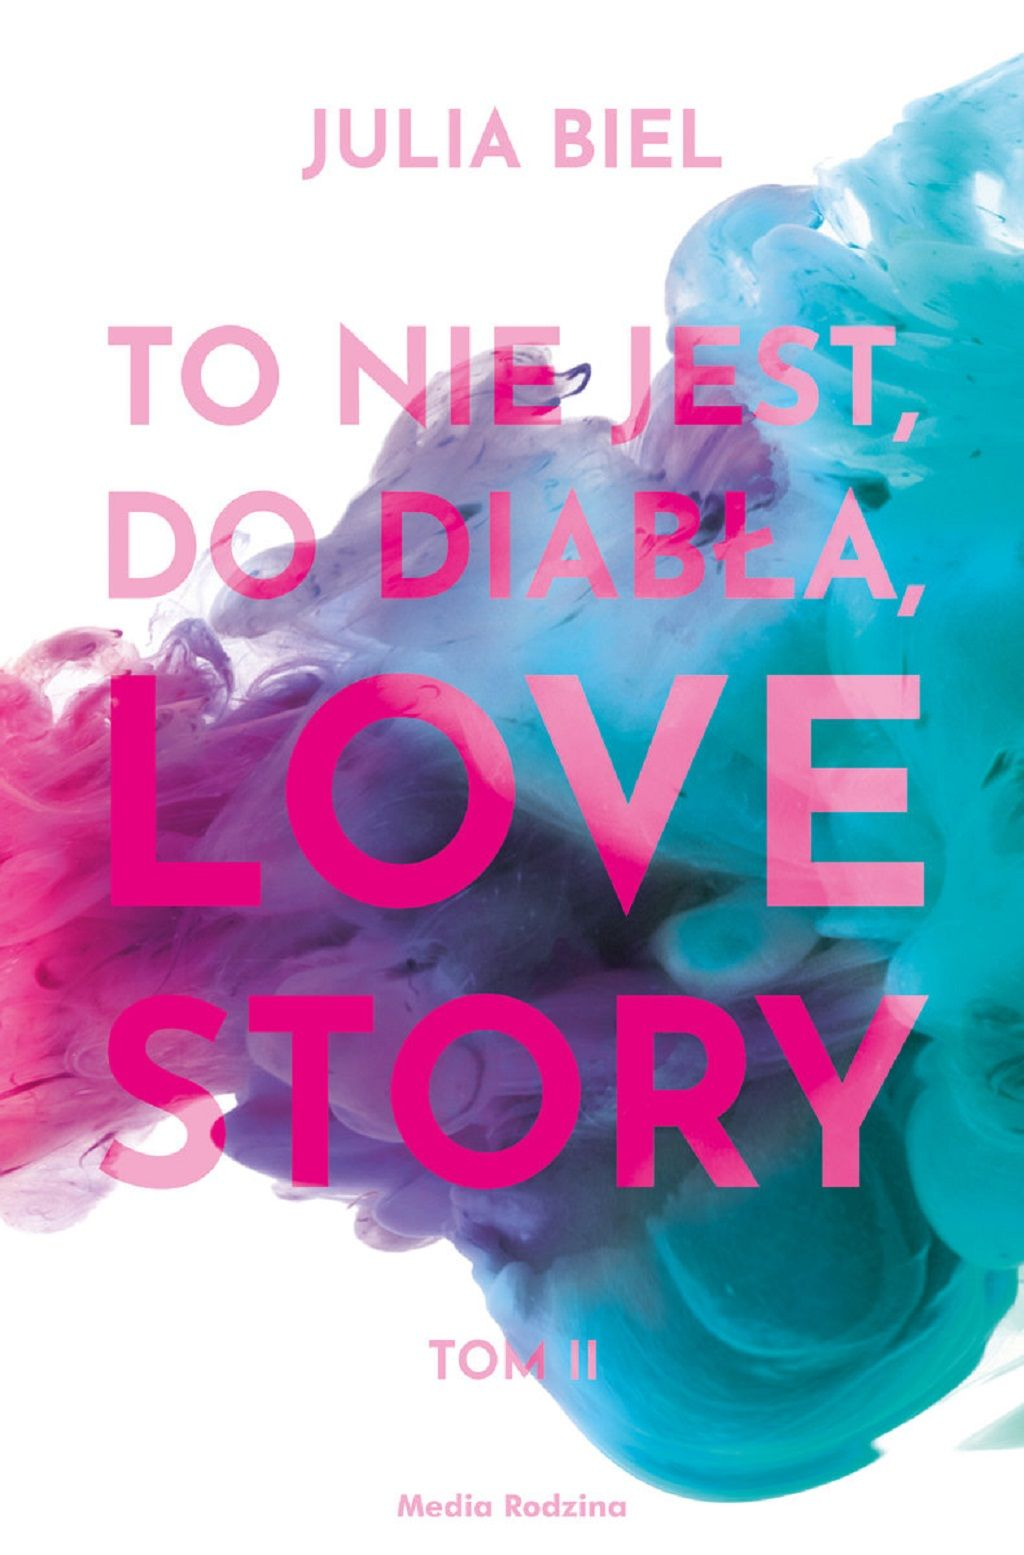 Julia Biel – To nie jest, do diabła, love story Tom 2